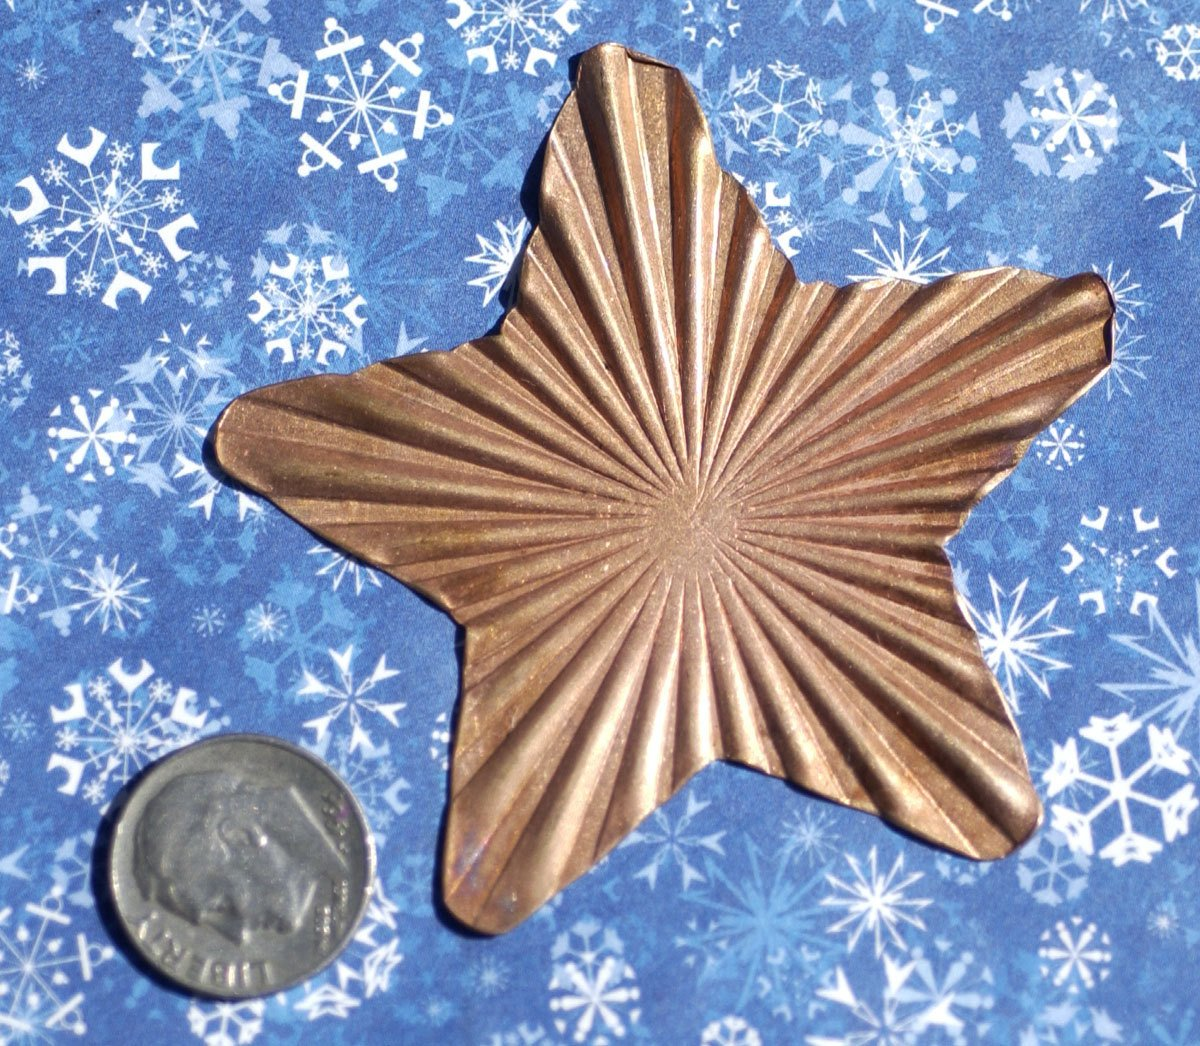 Large Star Ruffled 20g 62mm Cutout for Enameling Stamping Texturing Soldering Blanks